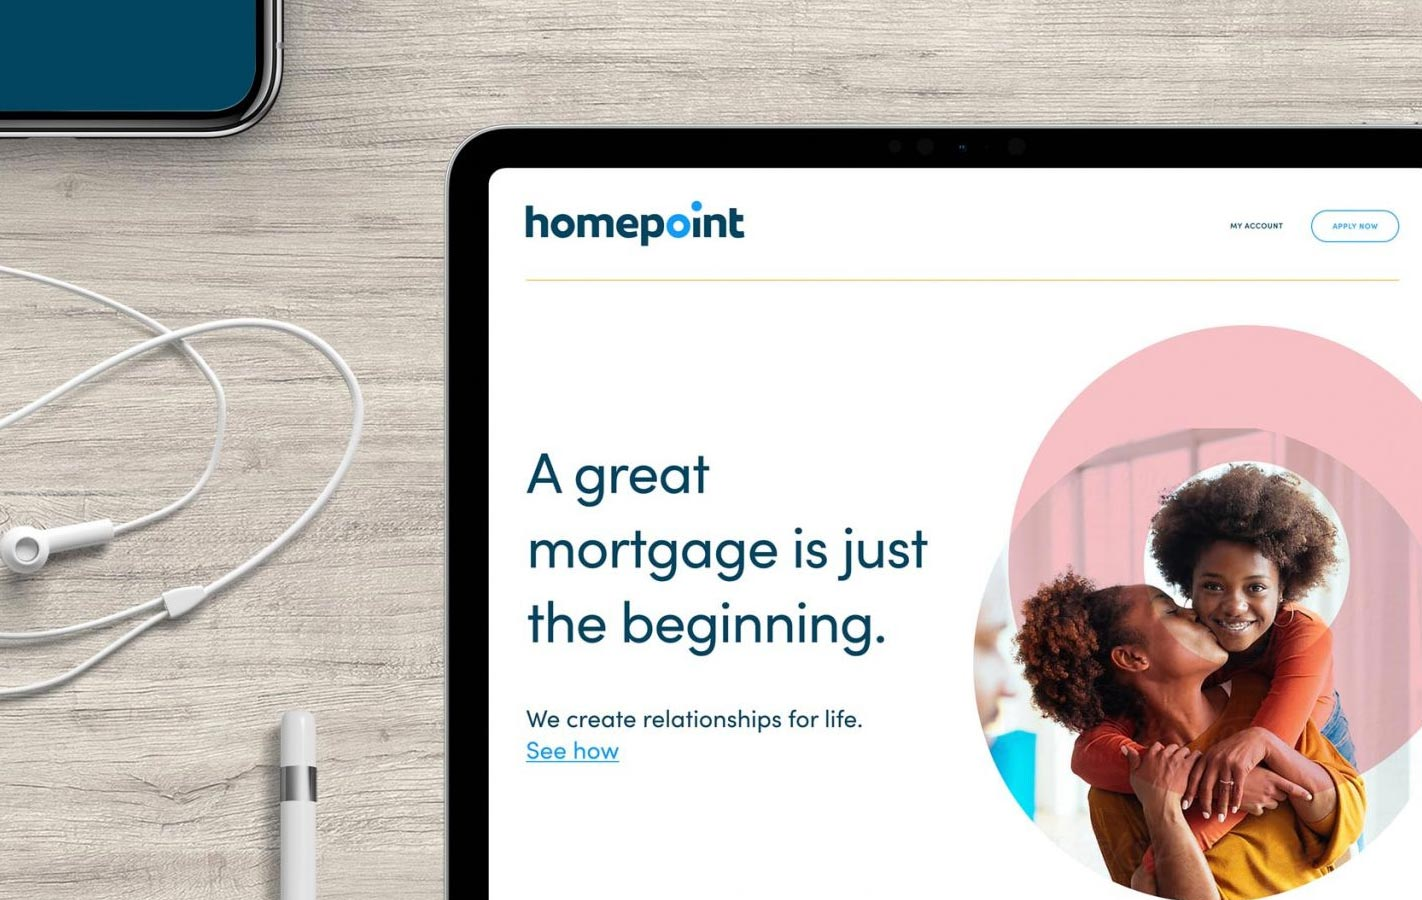 Homepoint business overview and Fannie Mae Hire